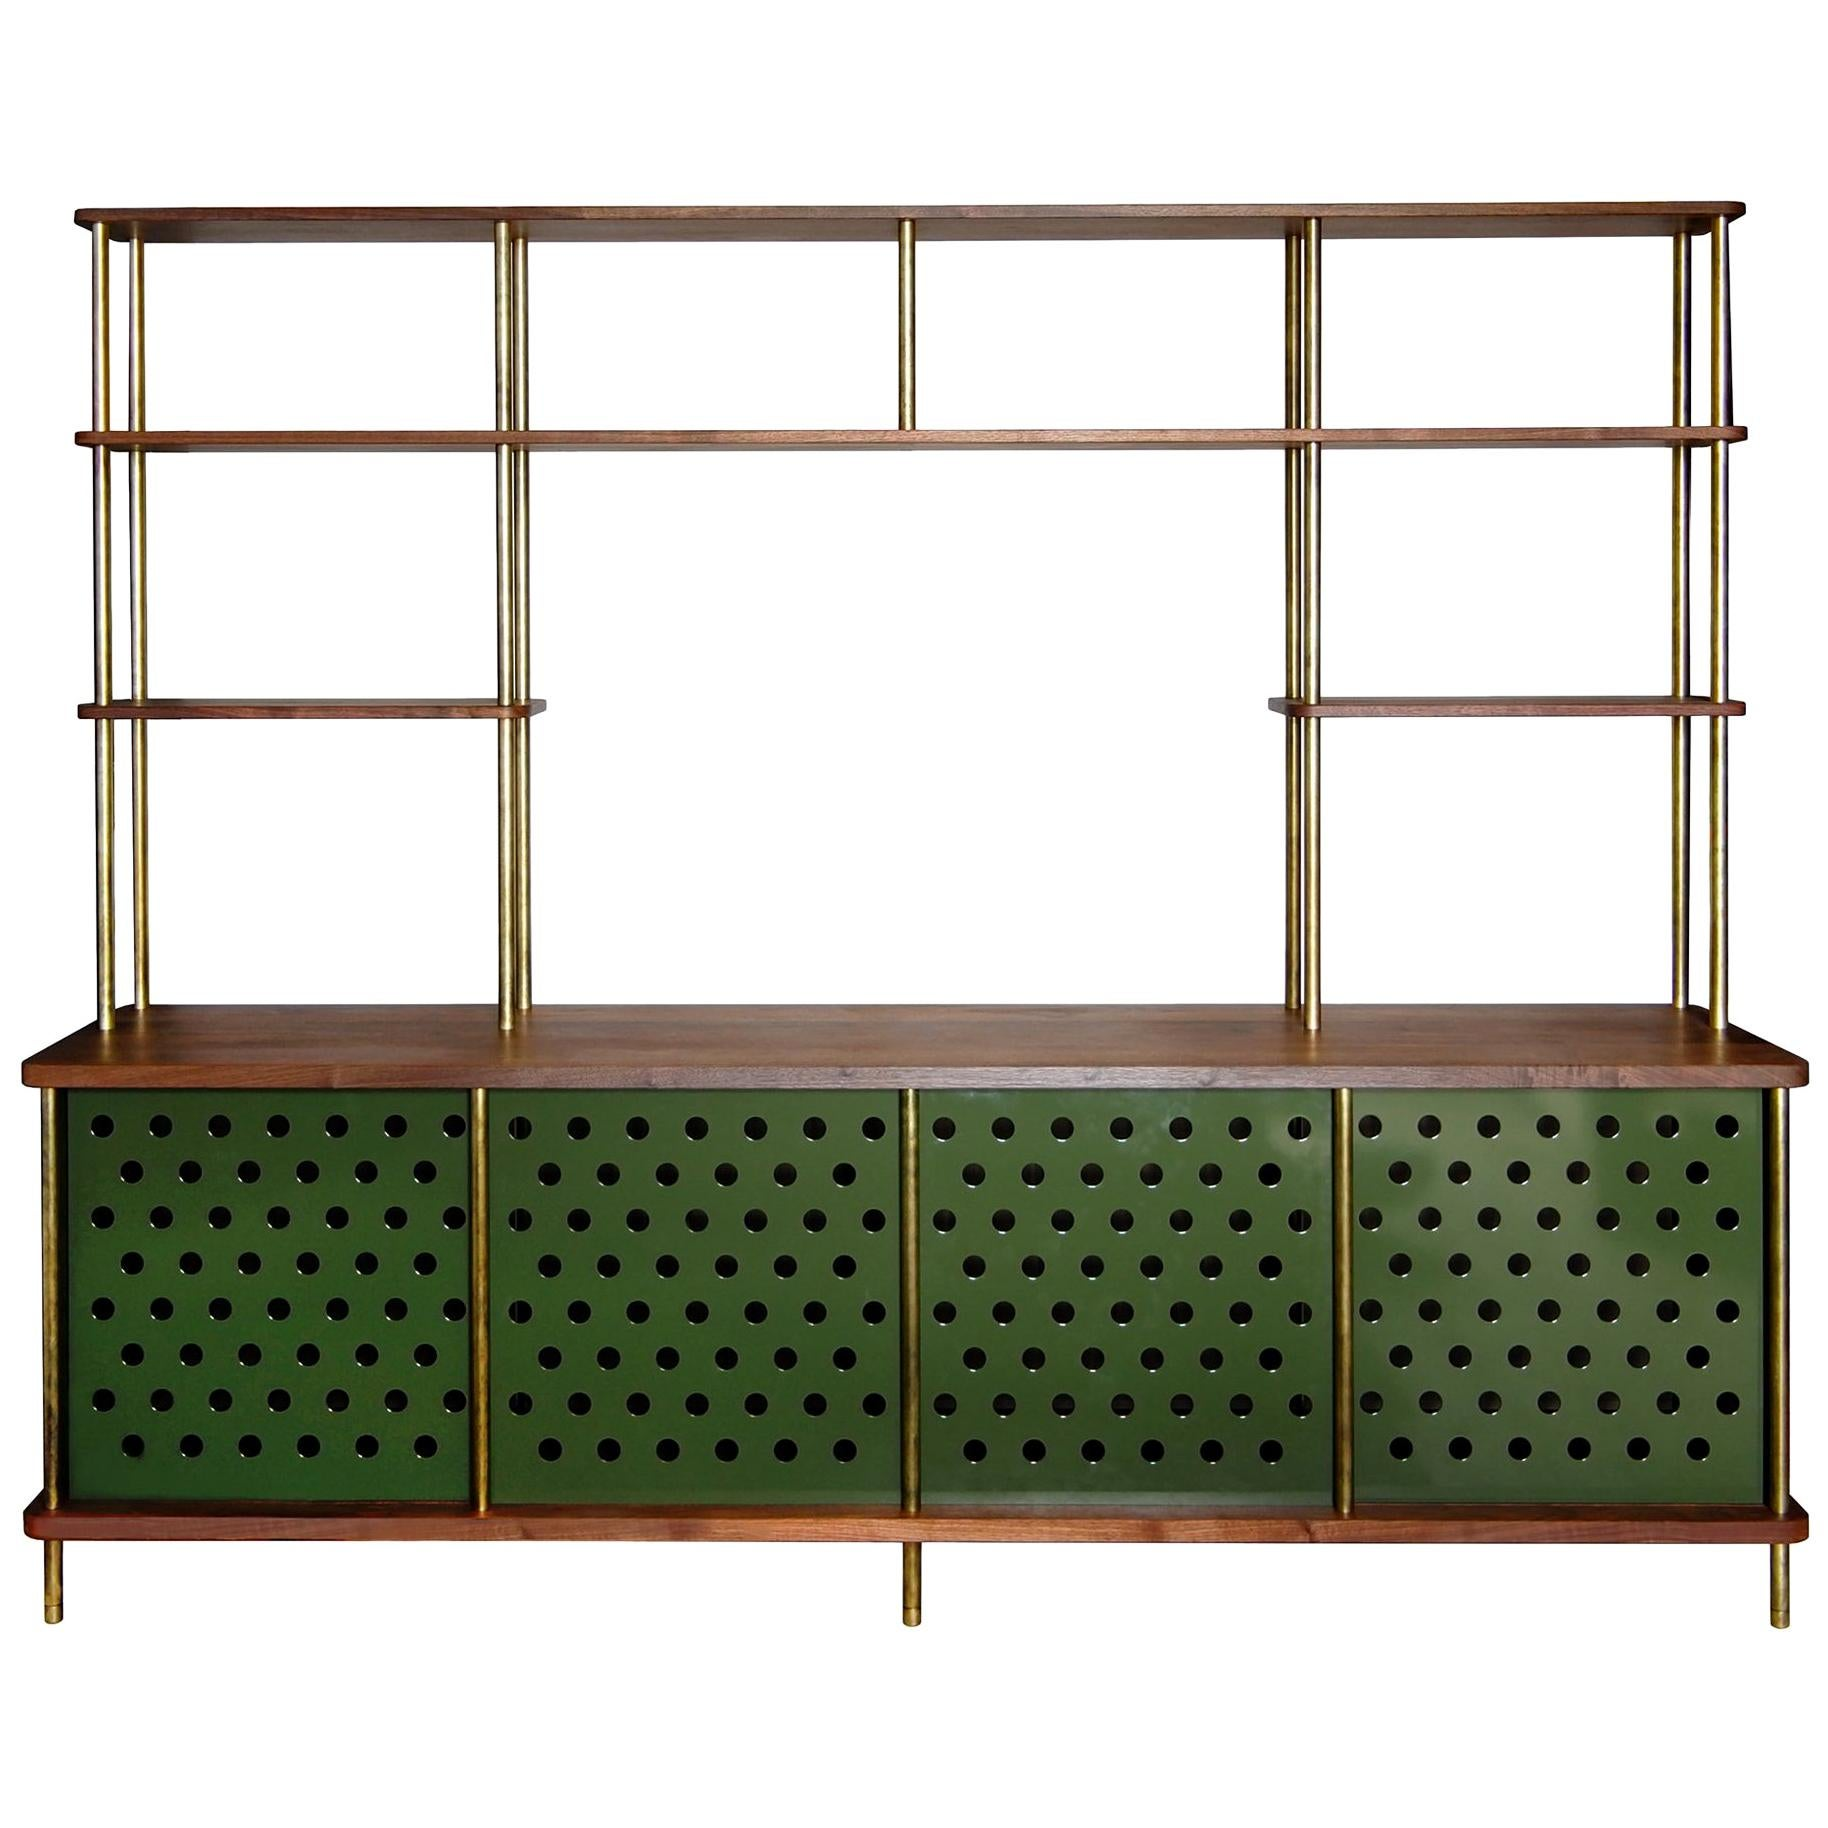 4 Door Strata Credenza in Walnut Wood and Brass by Fort Standard, in Stock